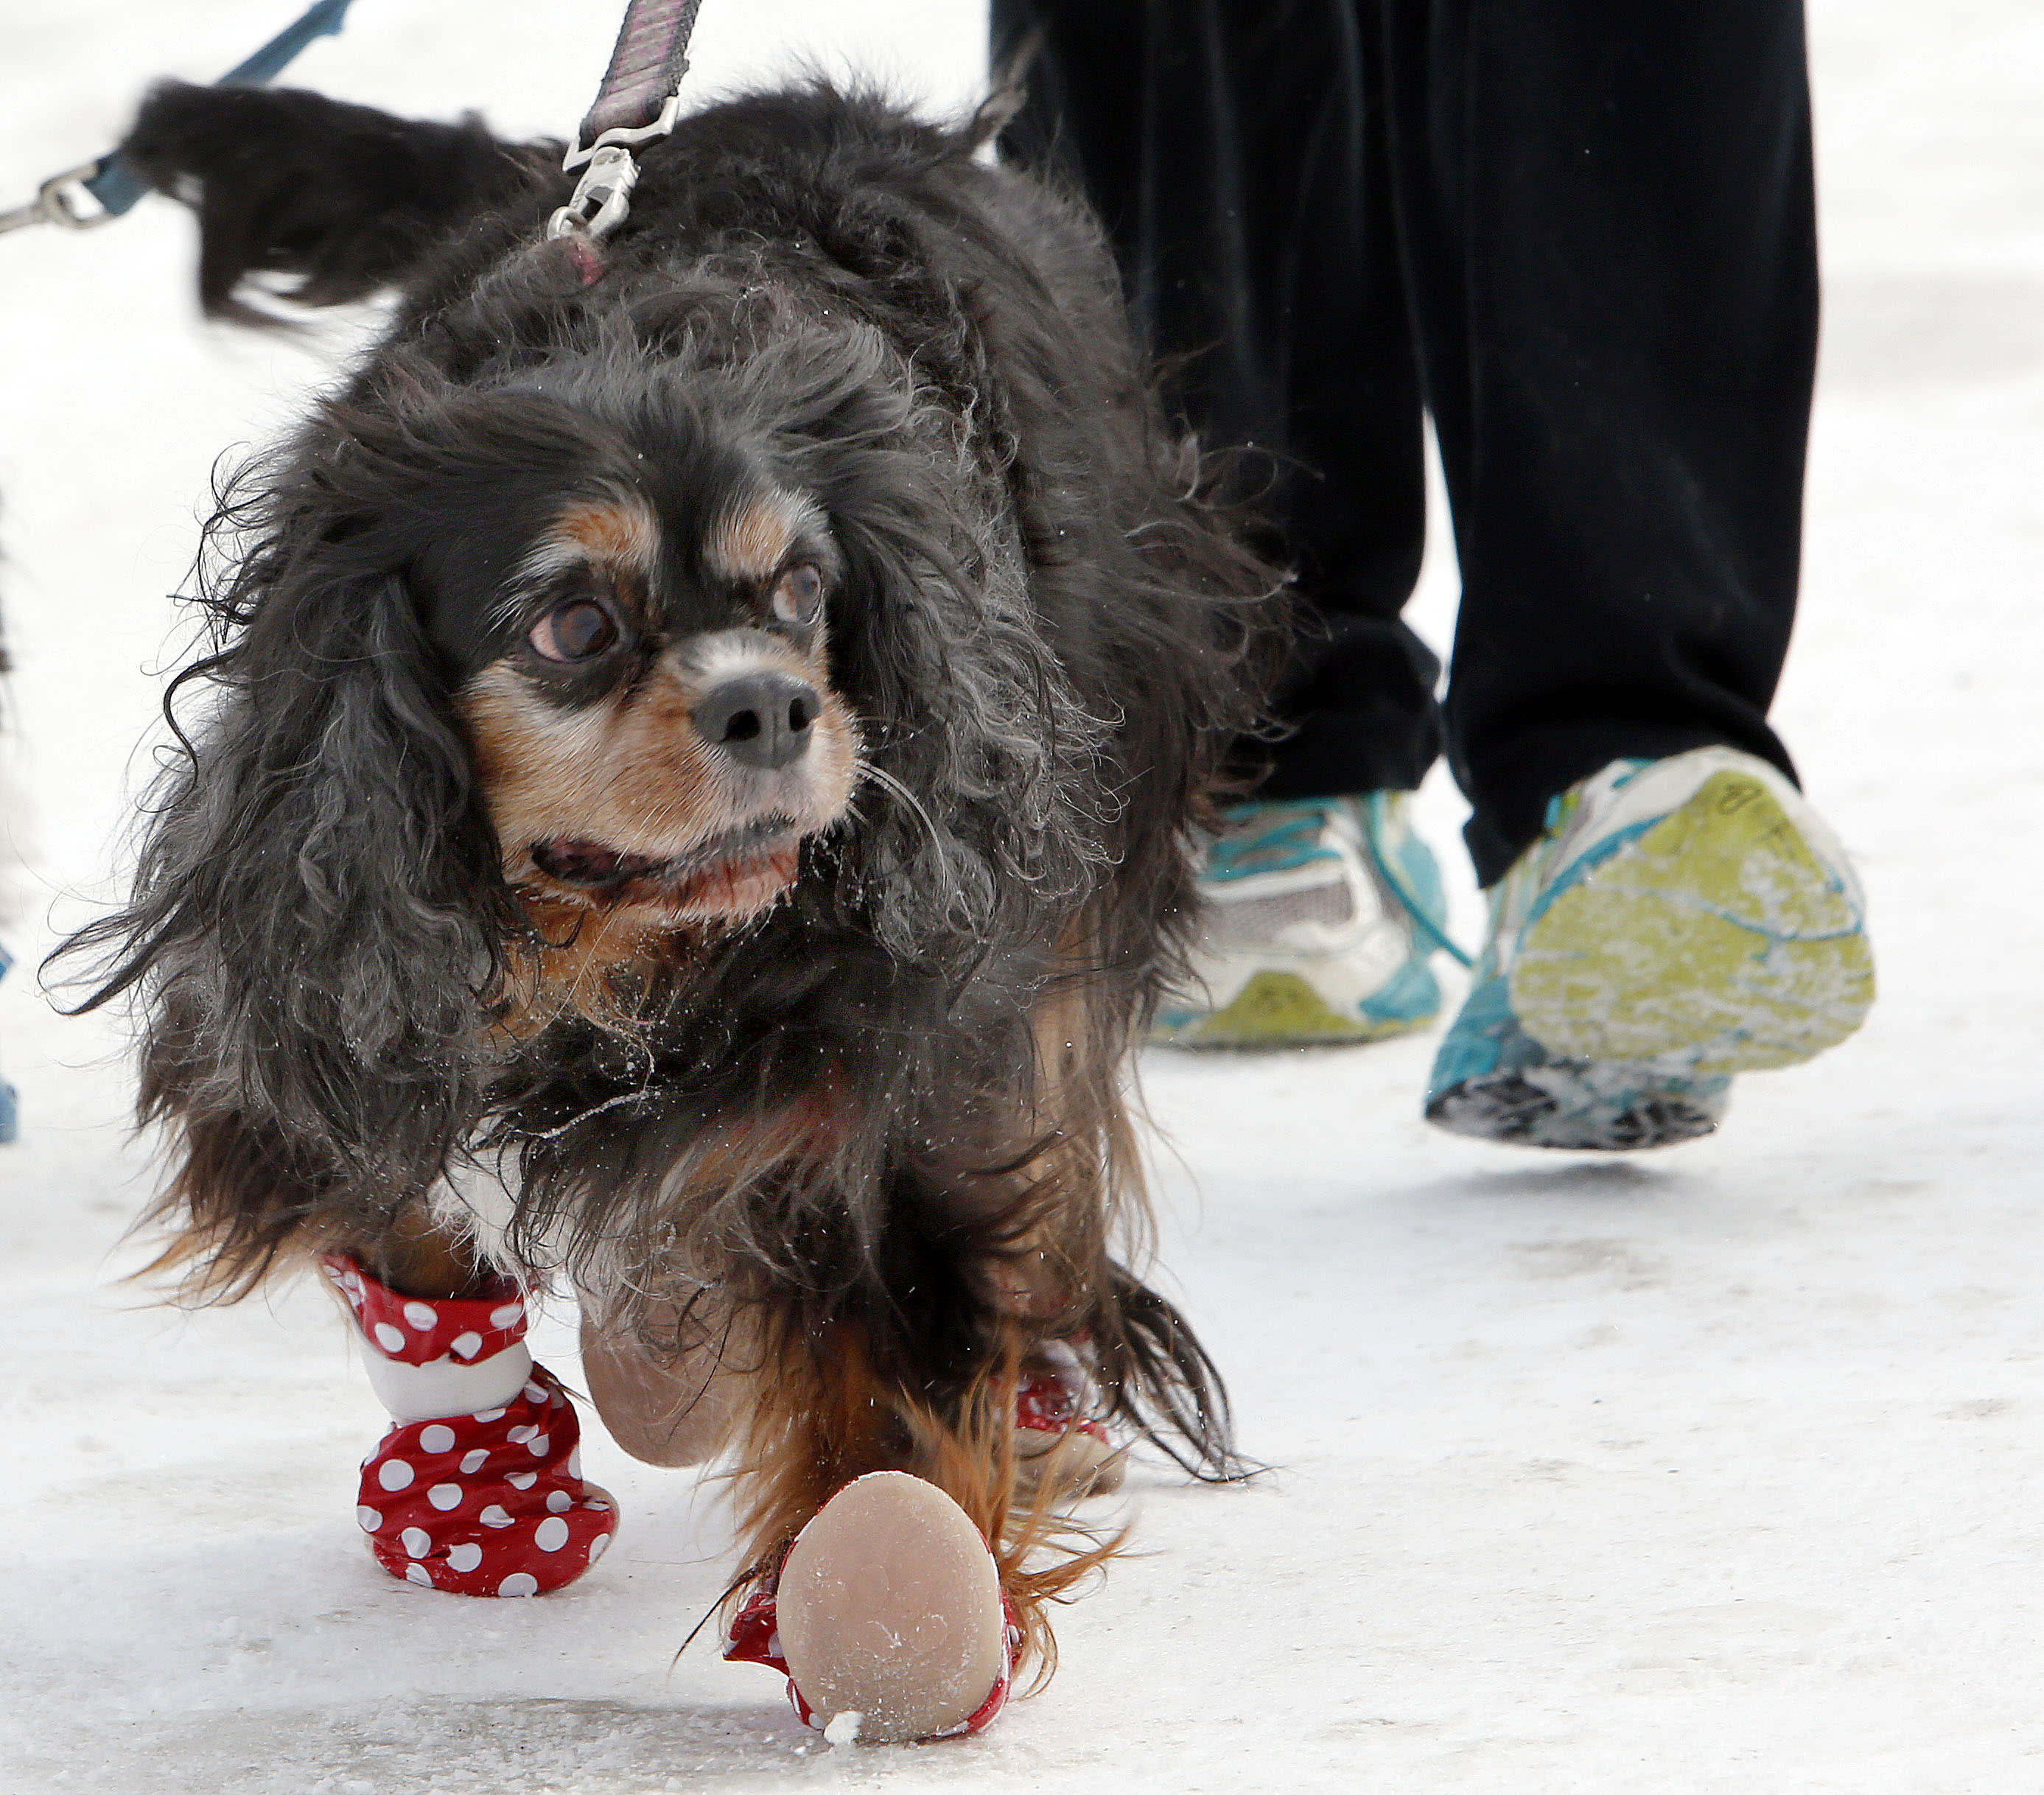 Winter weather wrath? Pooches' paws feel the pain, too